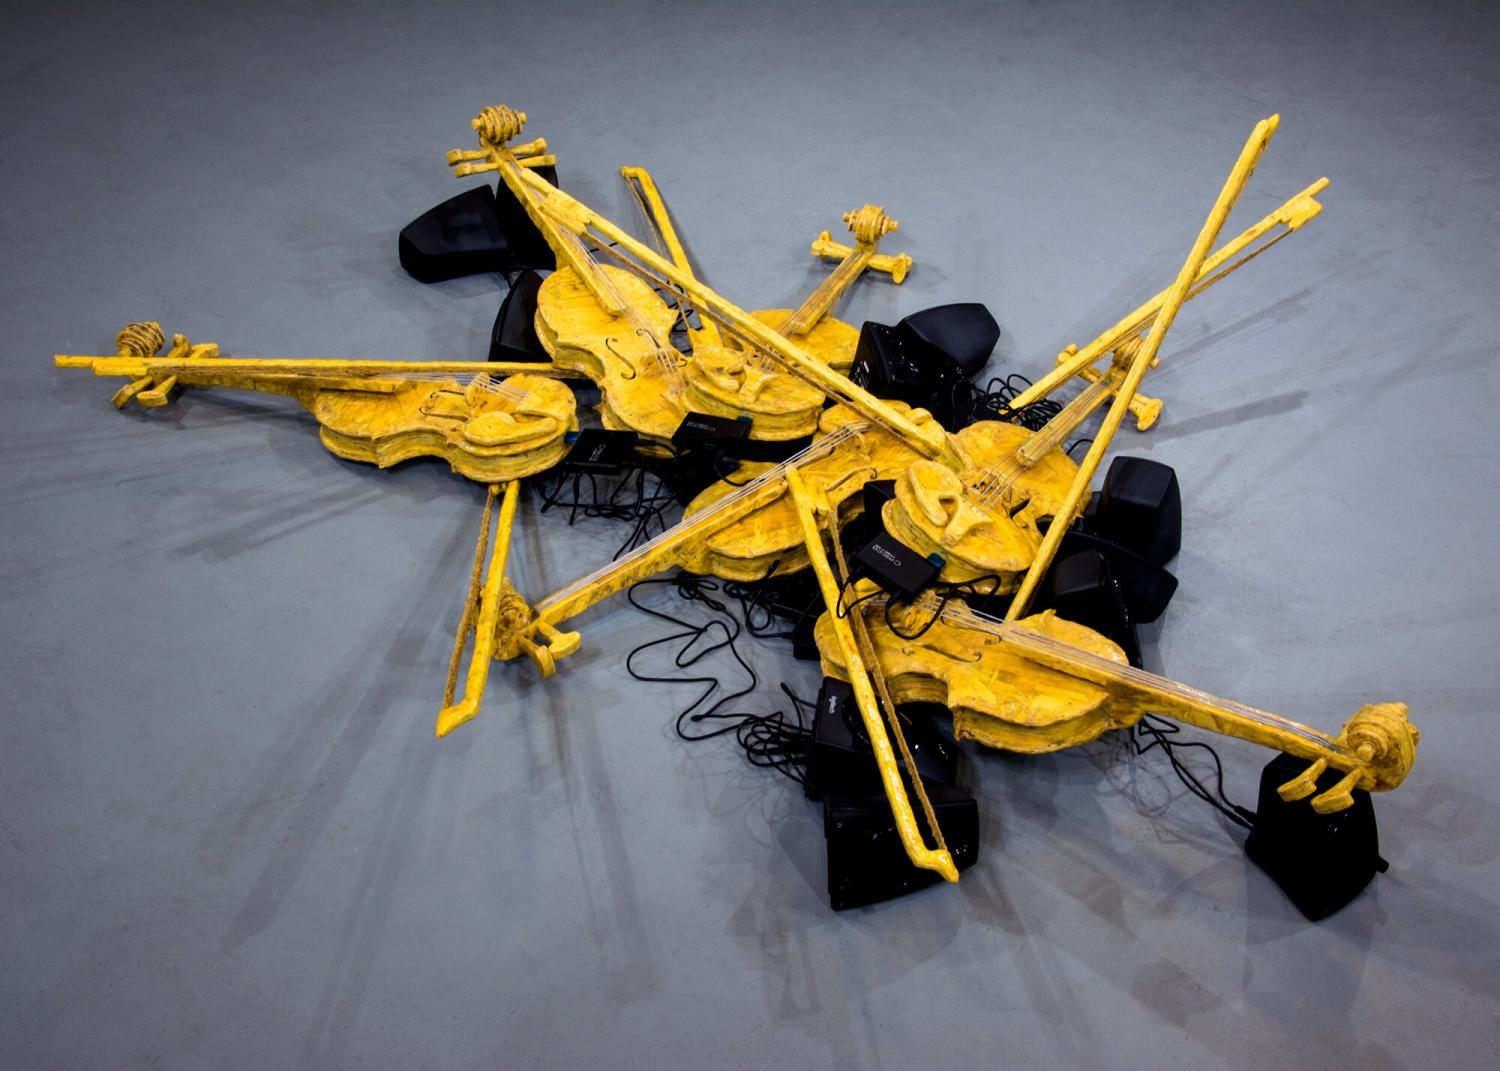 Sculpture made up of assorted yellow and black painted violins and bows, arranged as though they're scattered on the floor. Speakers and wires are intertwined with the sculpture.